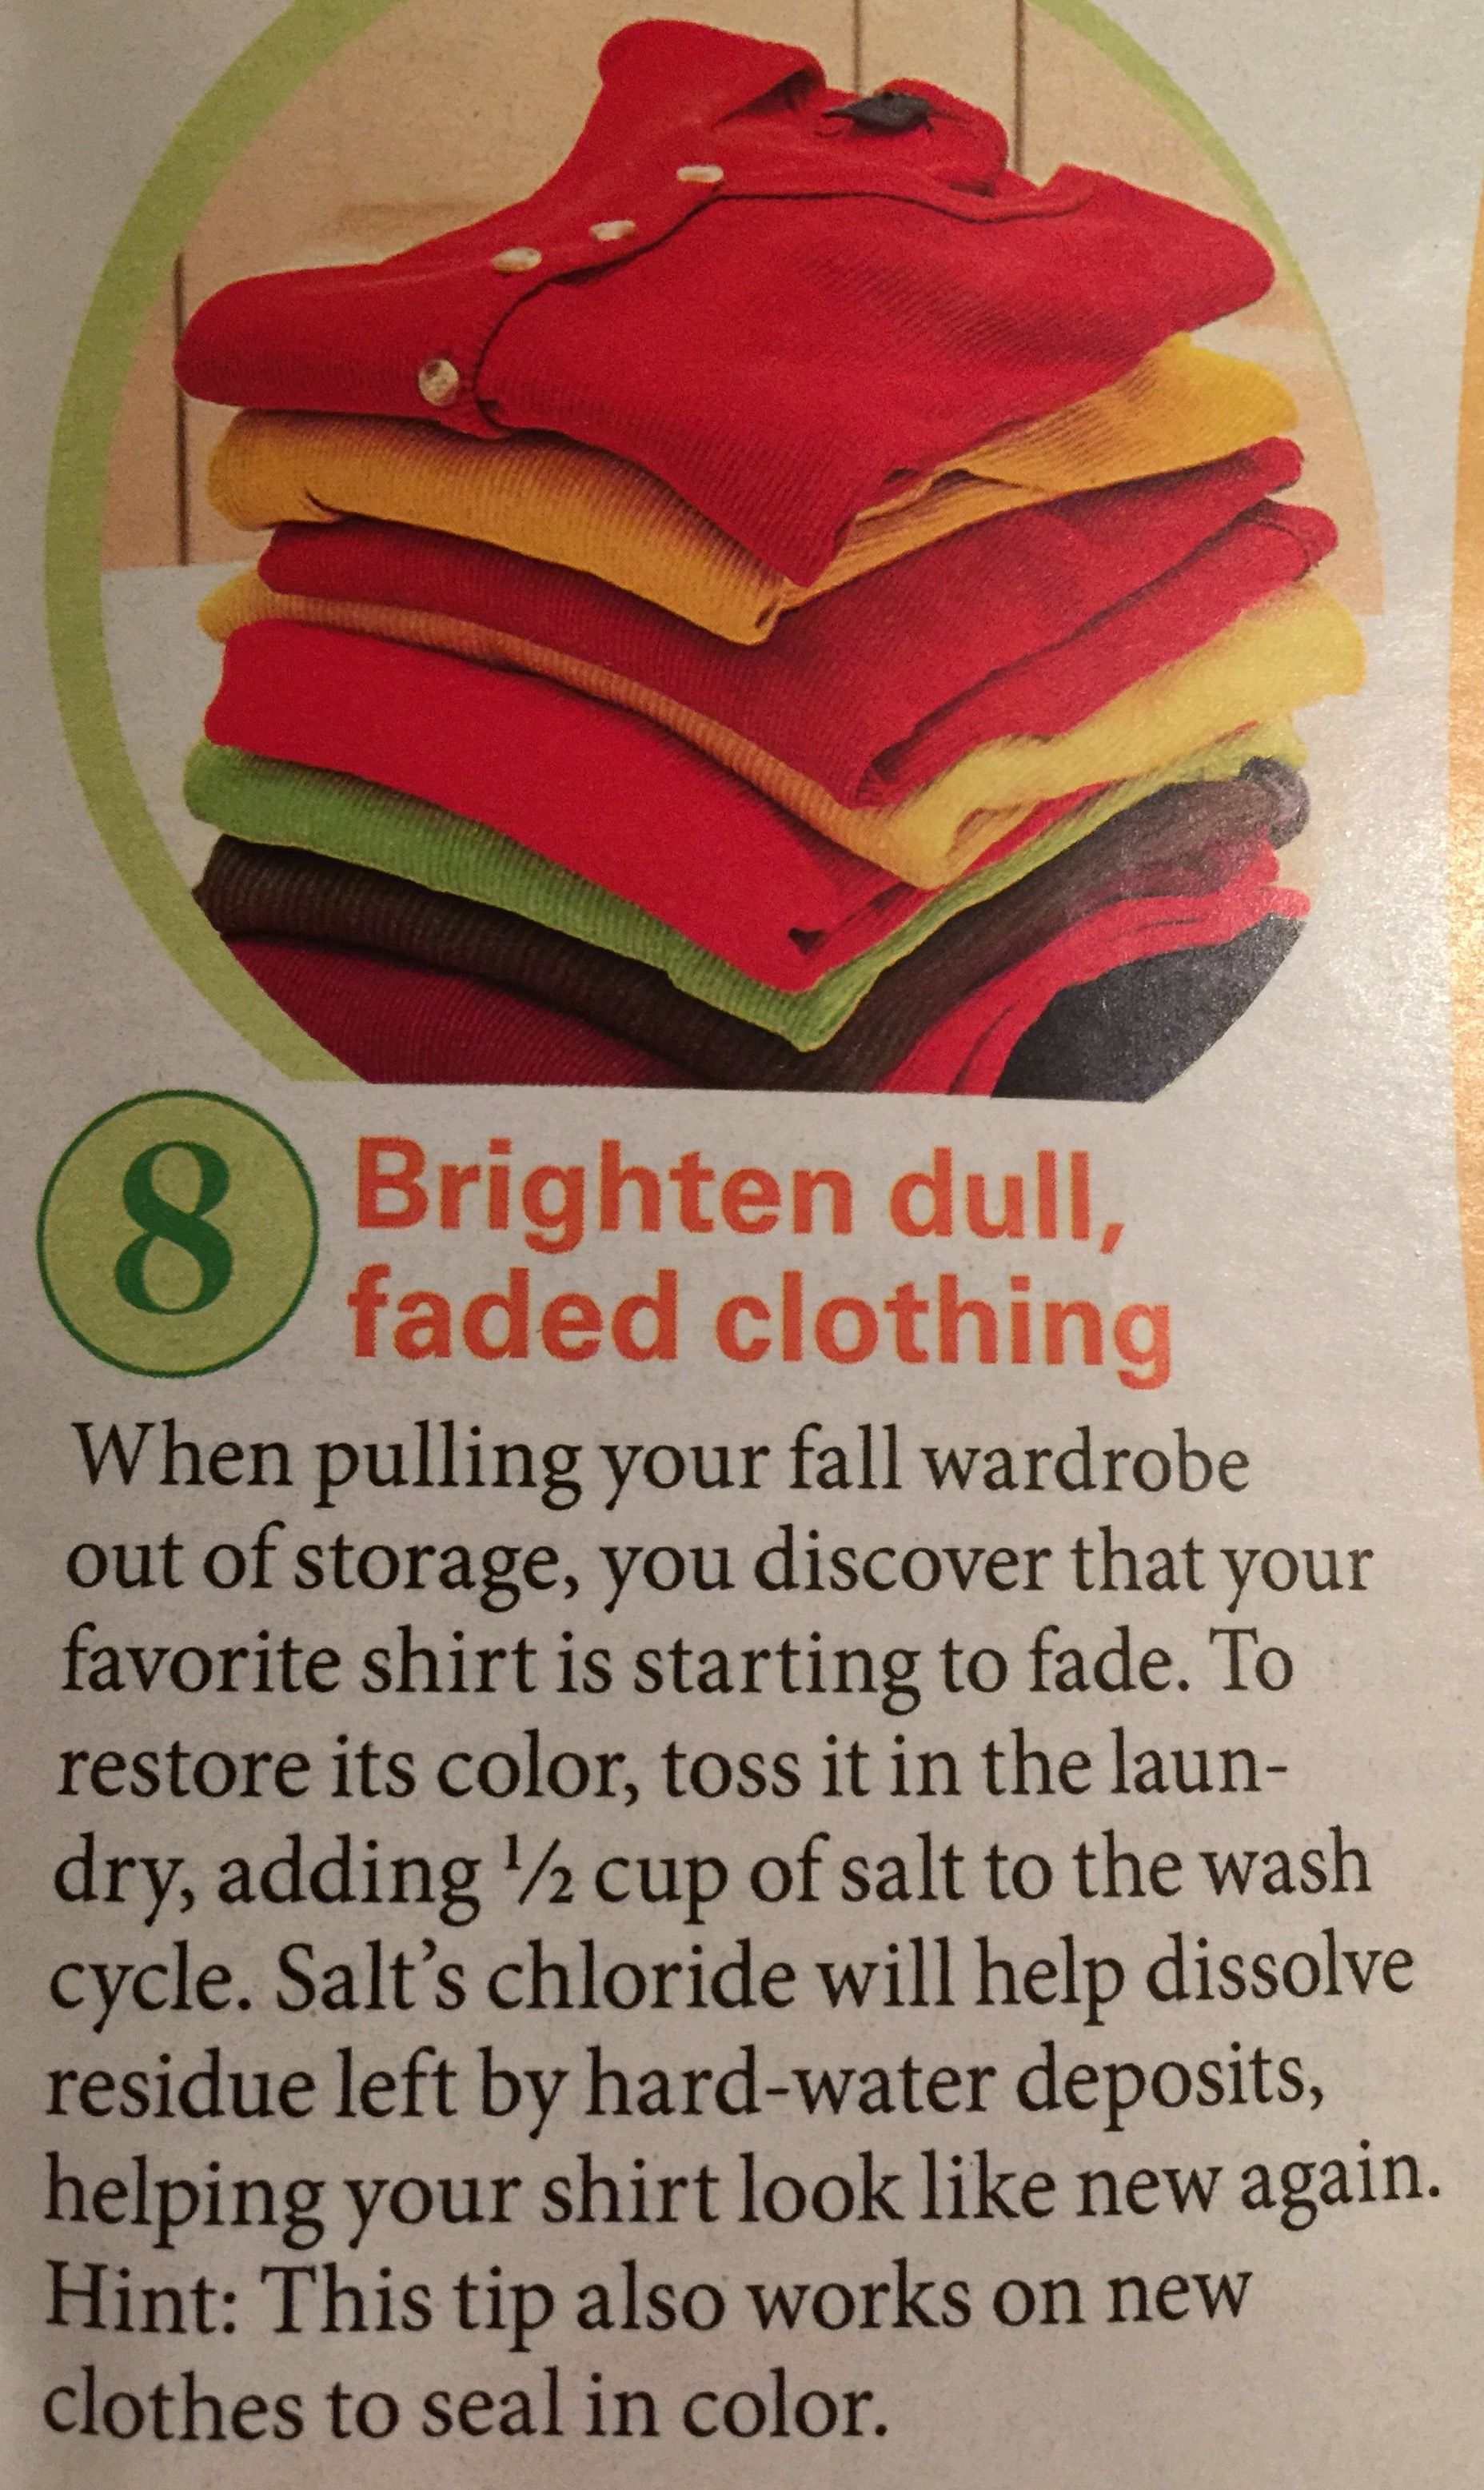 Brighten Dull Fading Clothing And Seal Color For New